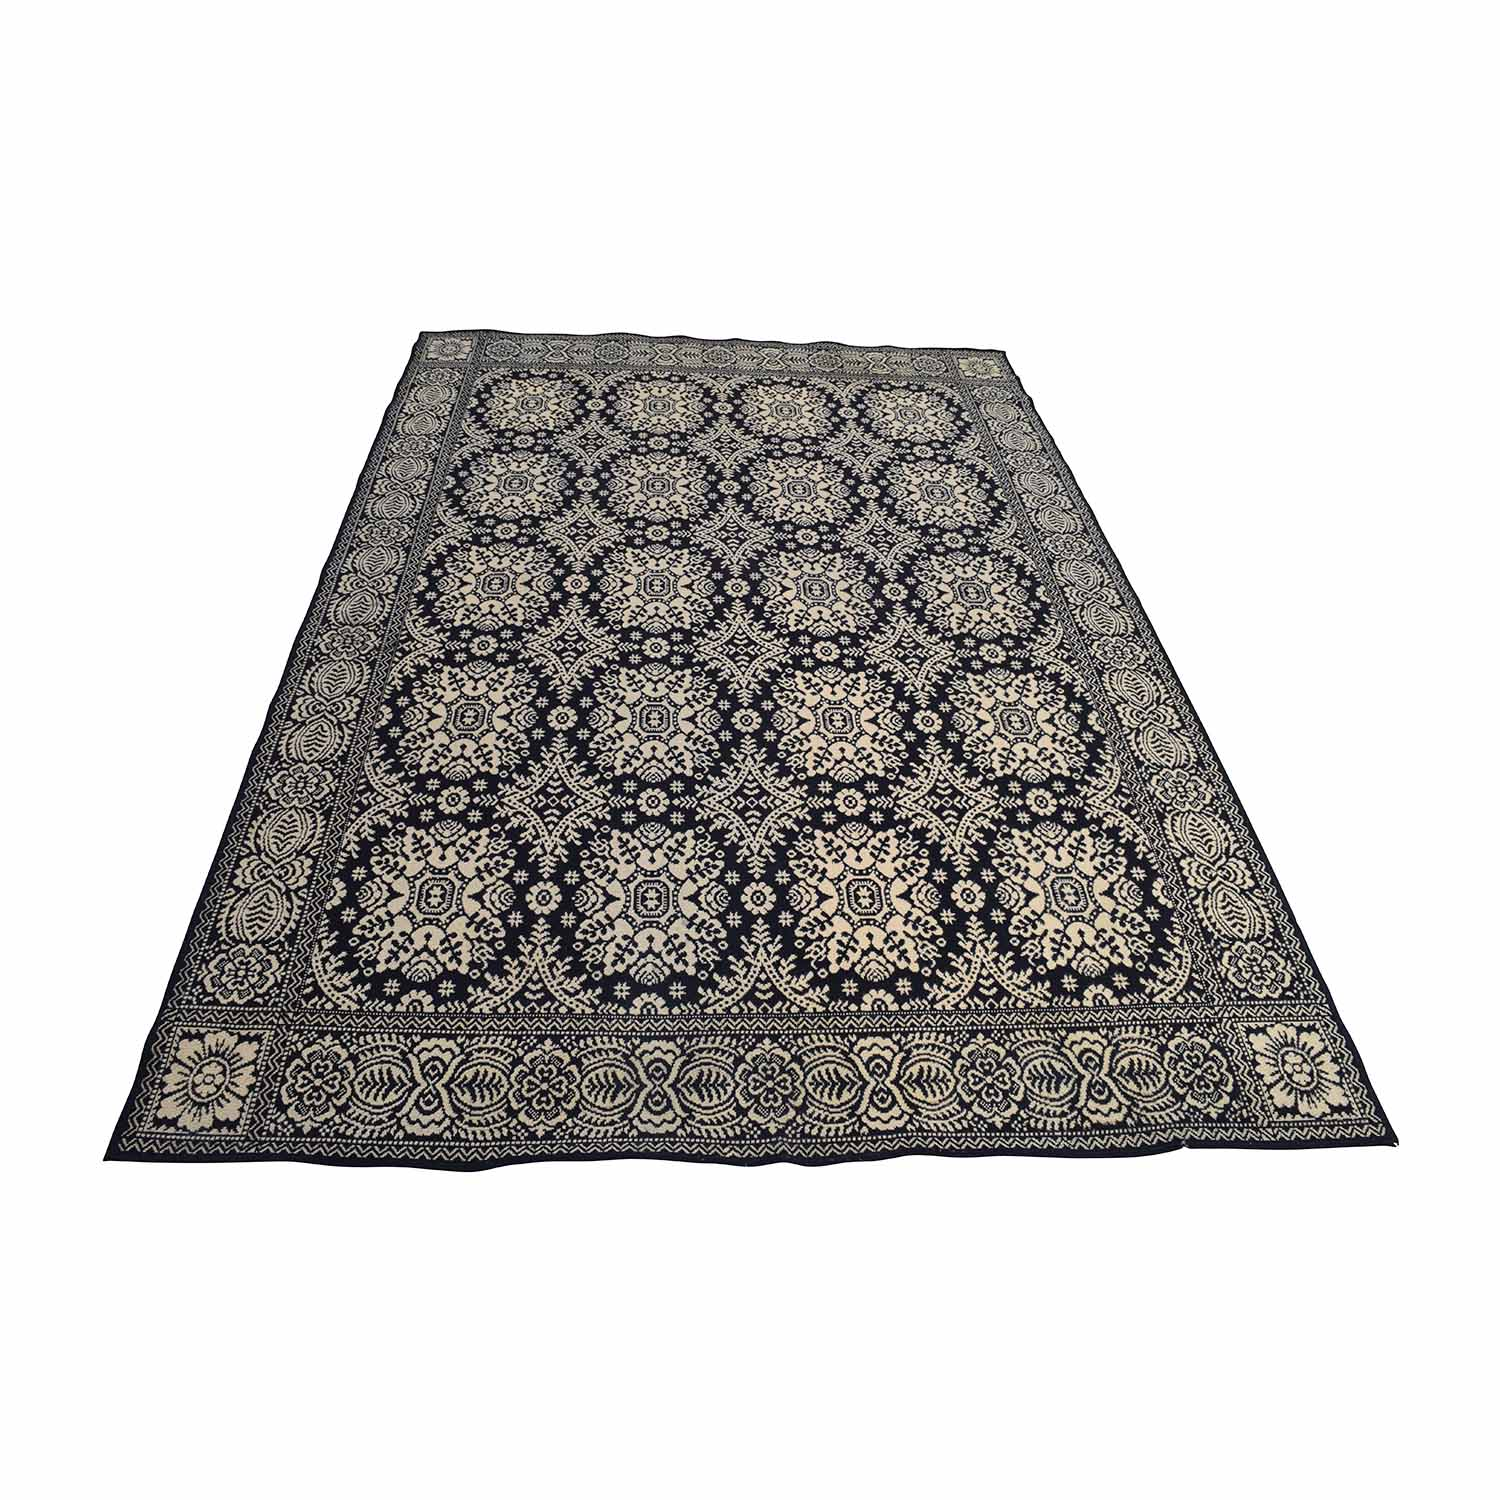 Black and Cream Print Custom Wool Rug second hand